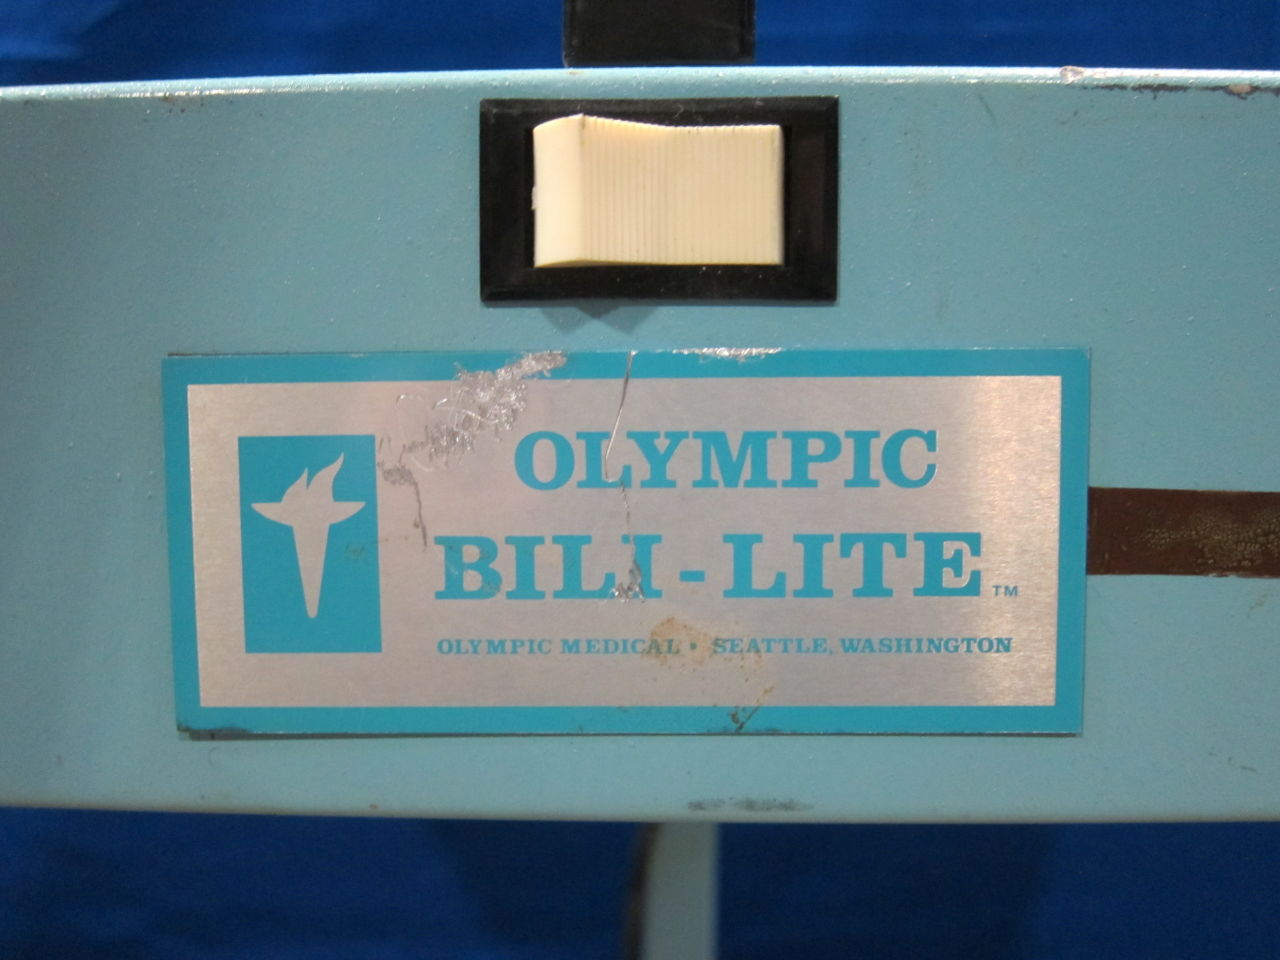 OLYMPIC 33 Phototherapy Lamp